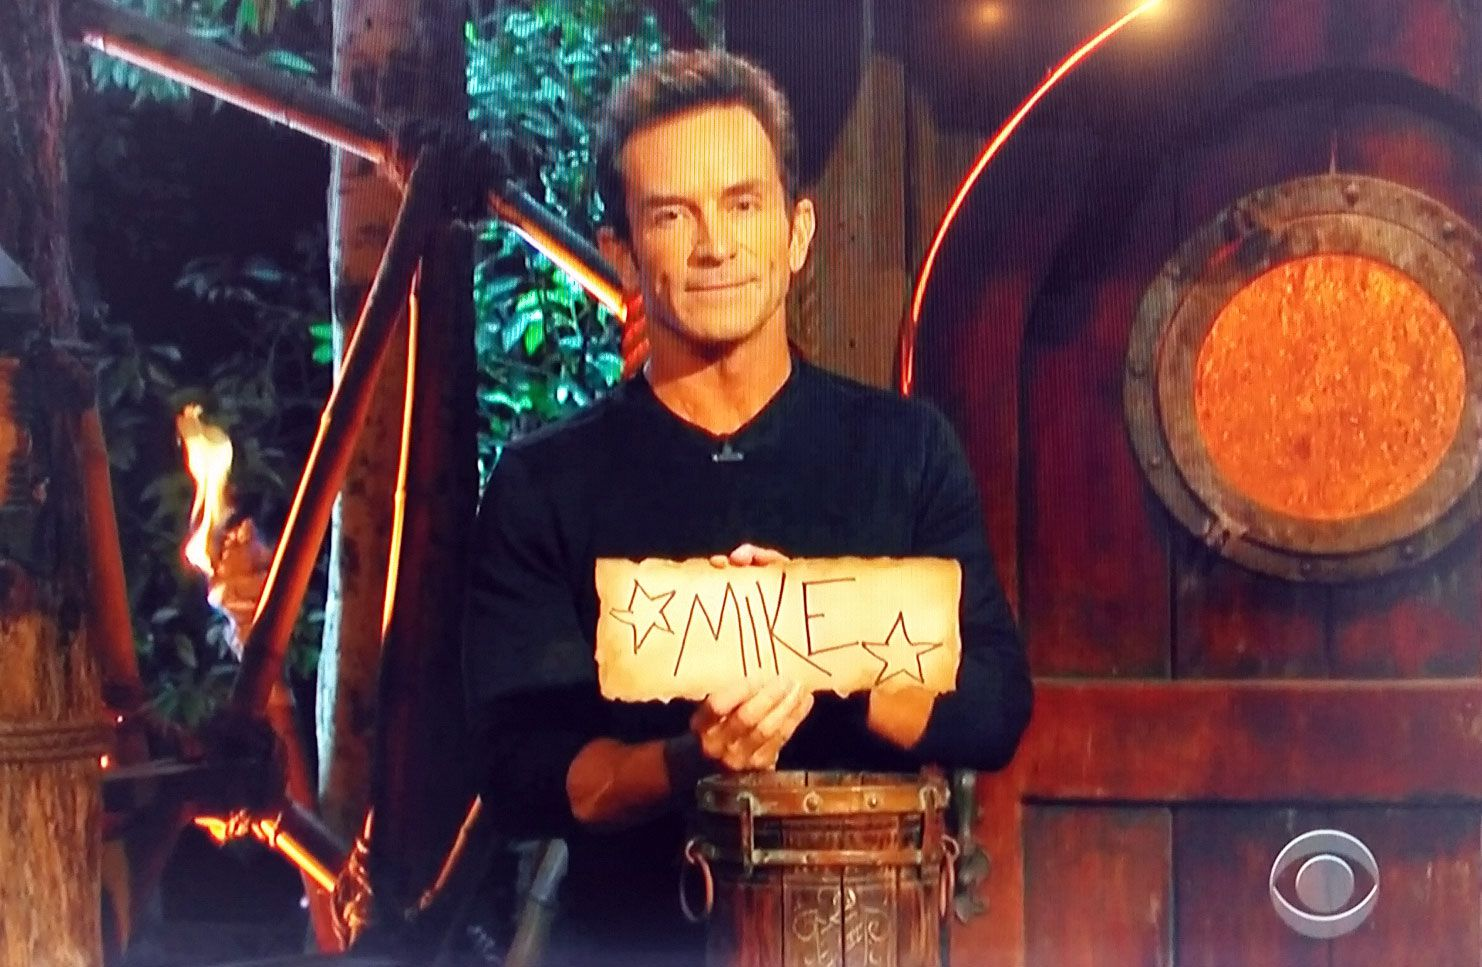 Jeff Probst reveals the winning vote on Wednesday night.